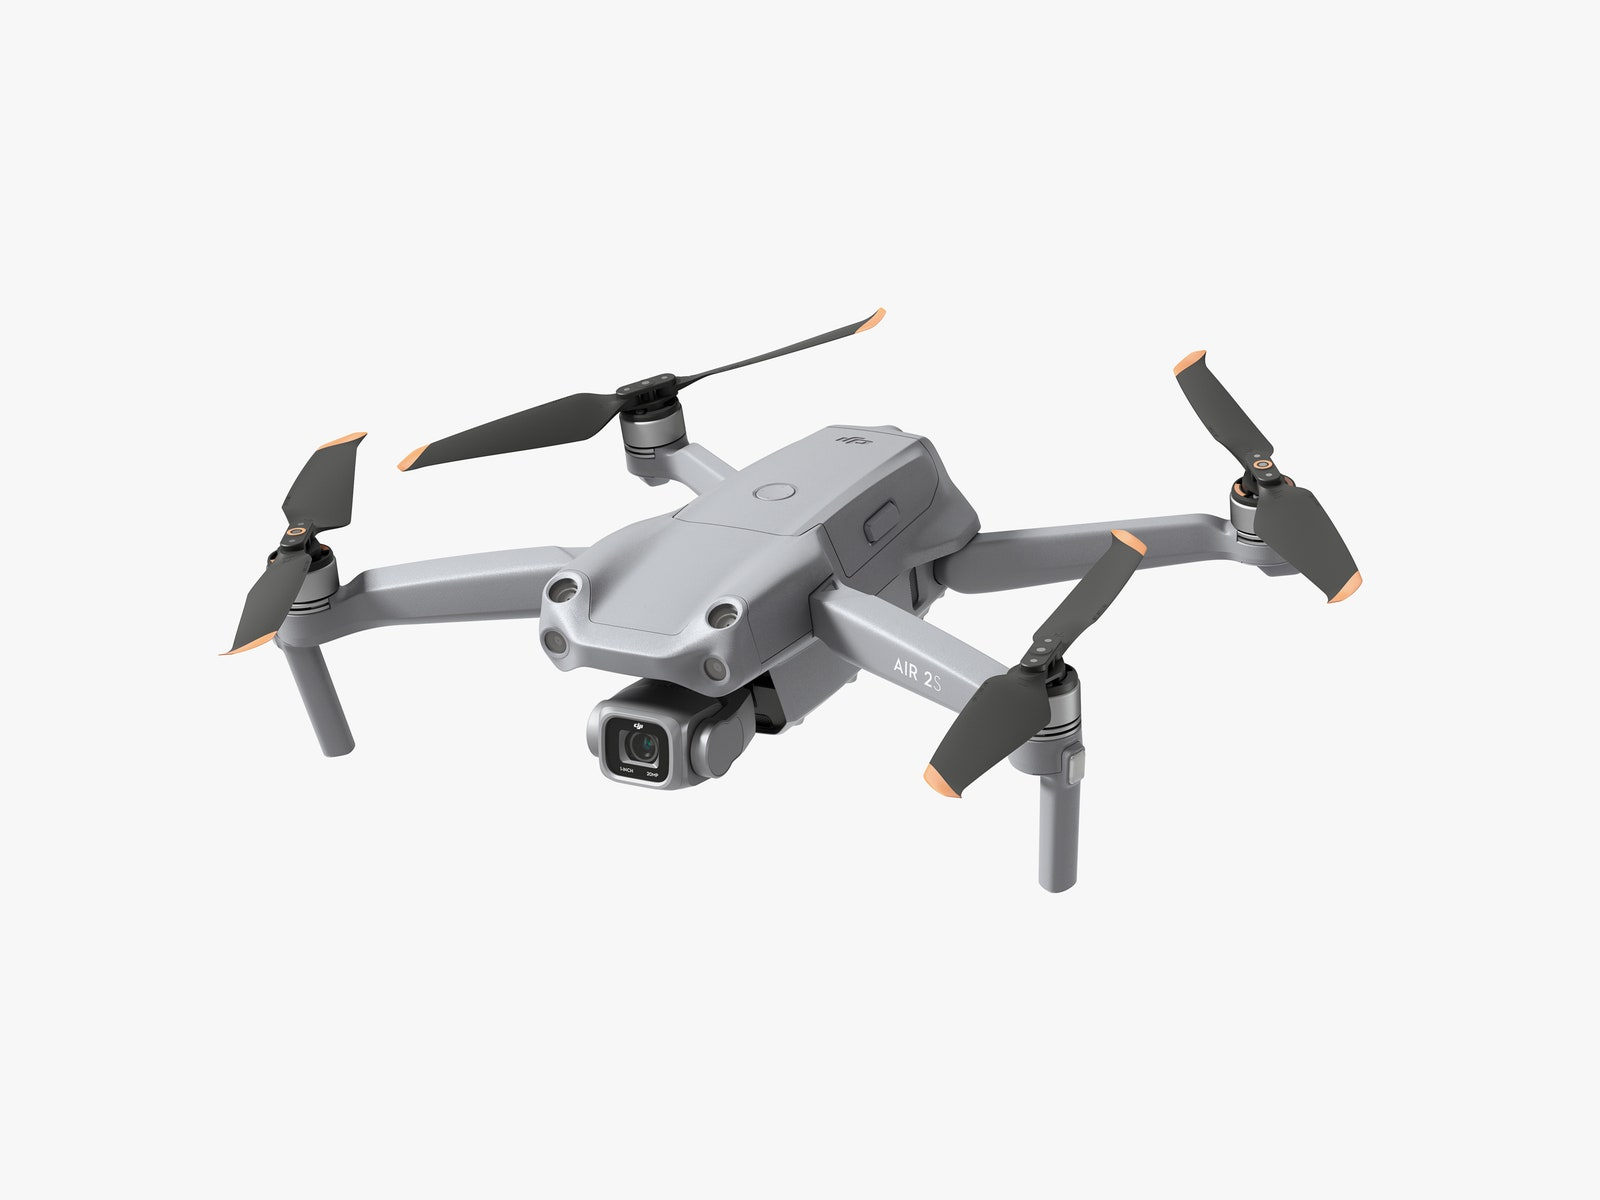 DJI Air 2S Review: The Best Drone You Can Buy